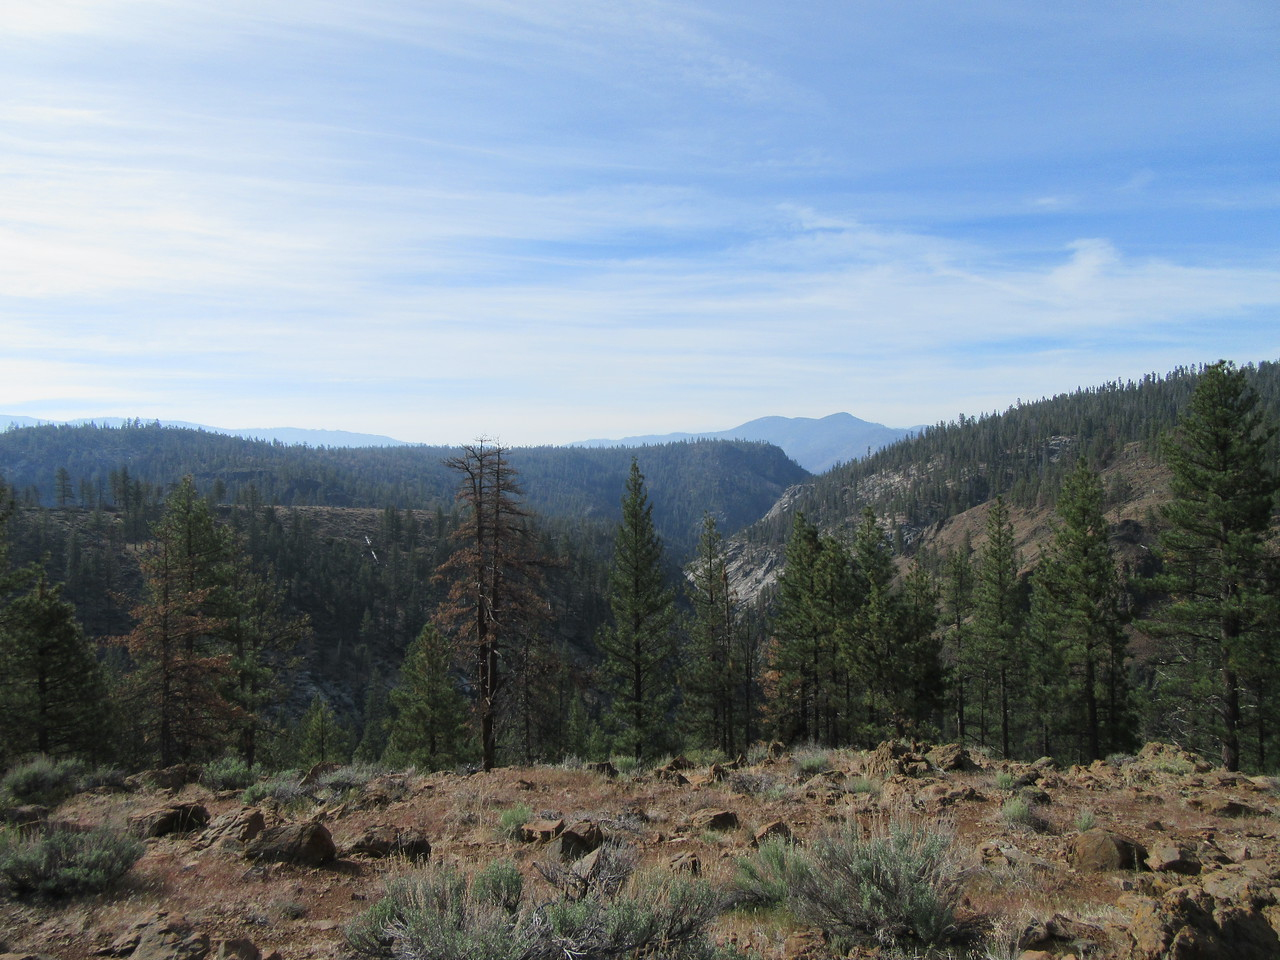 As I again neared the Little Kern River, I had this view south over the winding canyon it flows down, shortly before ...